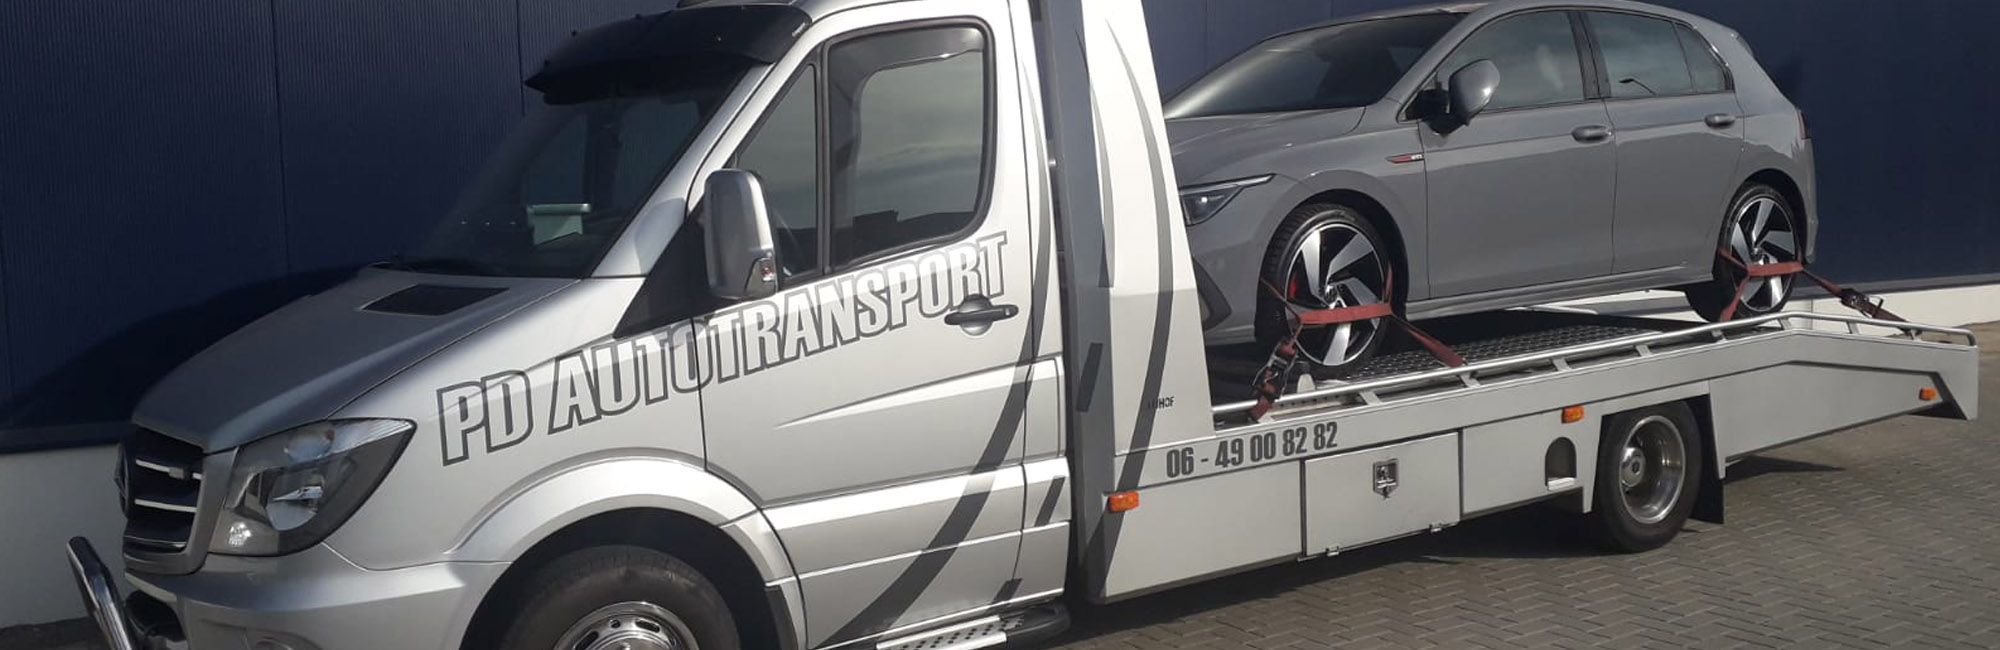 pd autotransport